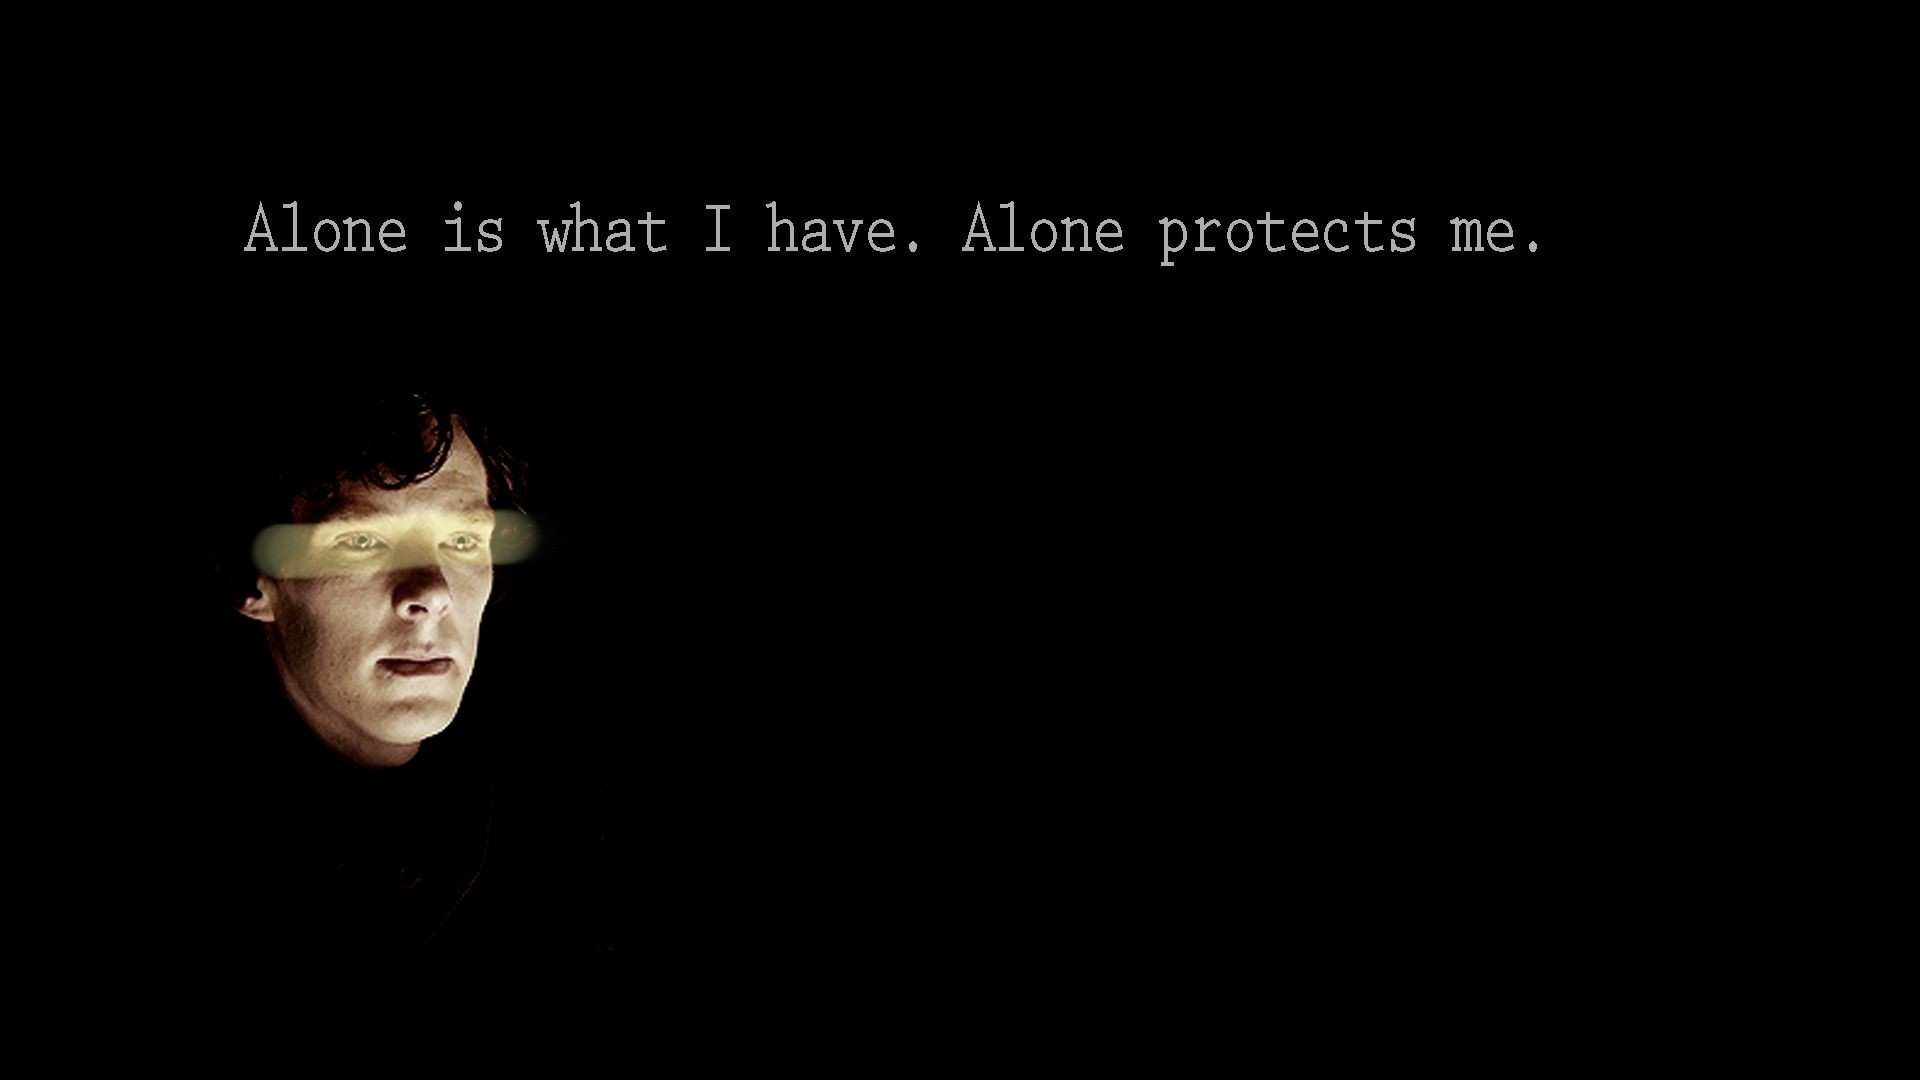 Leave Me Alone Quotes And Sad Quotes Sad Quotes Leave Alone Is What I Have Quotes 1920x1080 Download Hd Wallpaper Wallpapertip